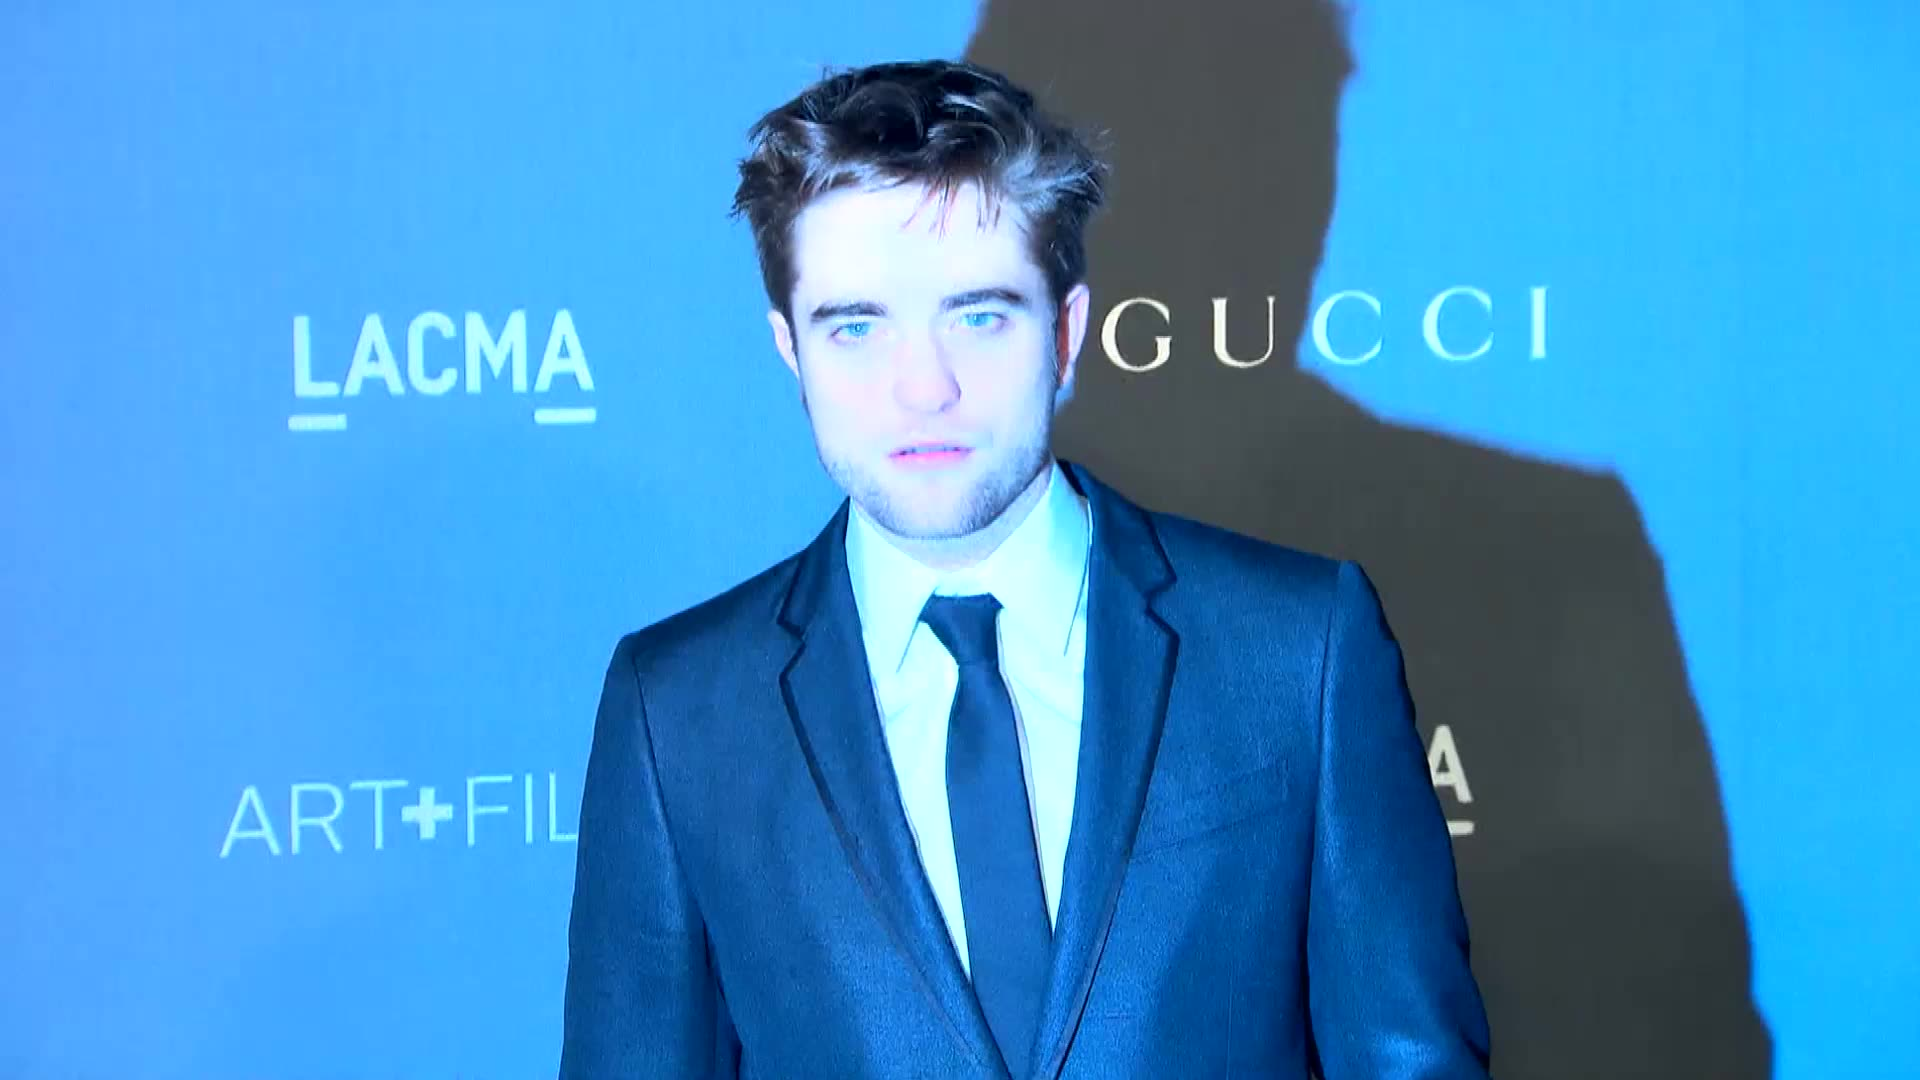 Robert Pattinson Thought Edward Cullen Was Depressed and Suicidal